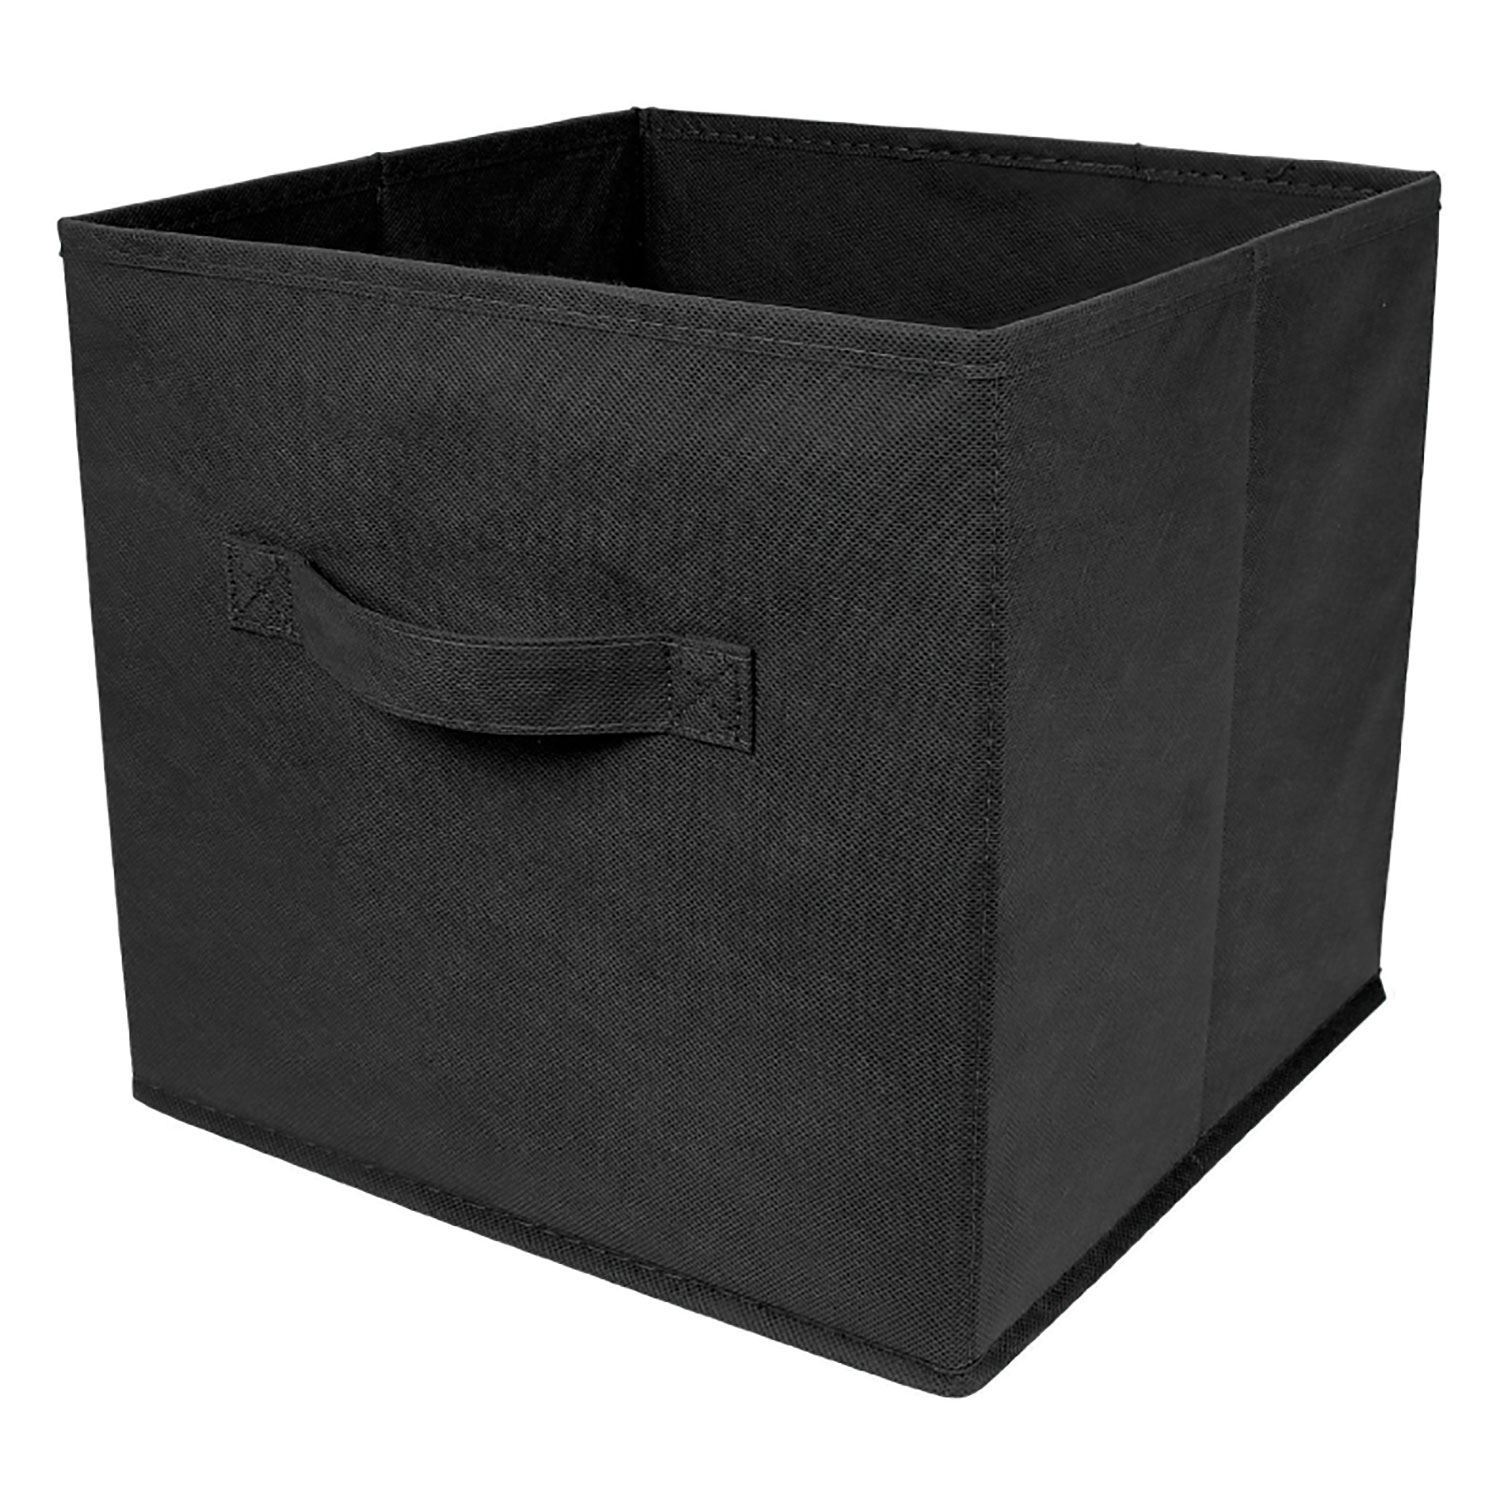 2 x foldable large square canvas storage box collapsible fabric cubes kids home ebay. Black Bedroom Furniture Sets. Home Design Ideas